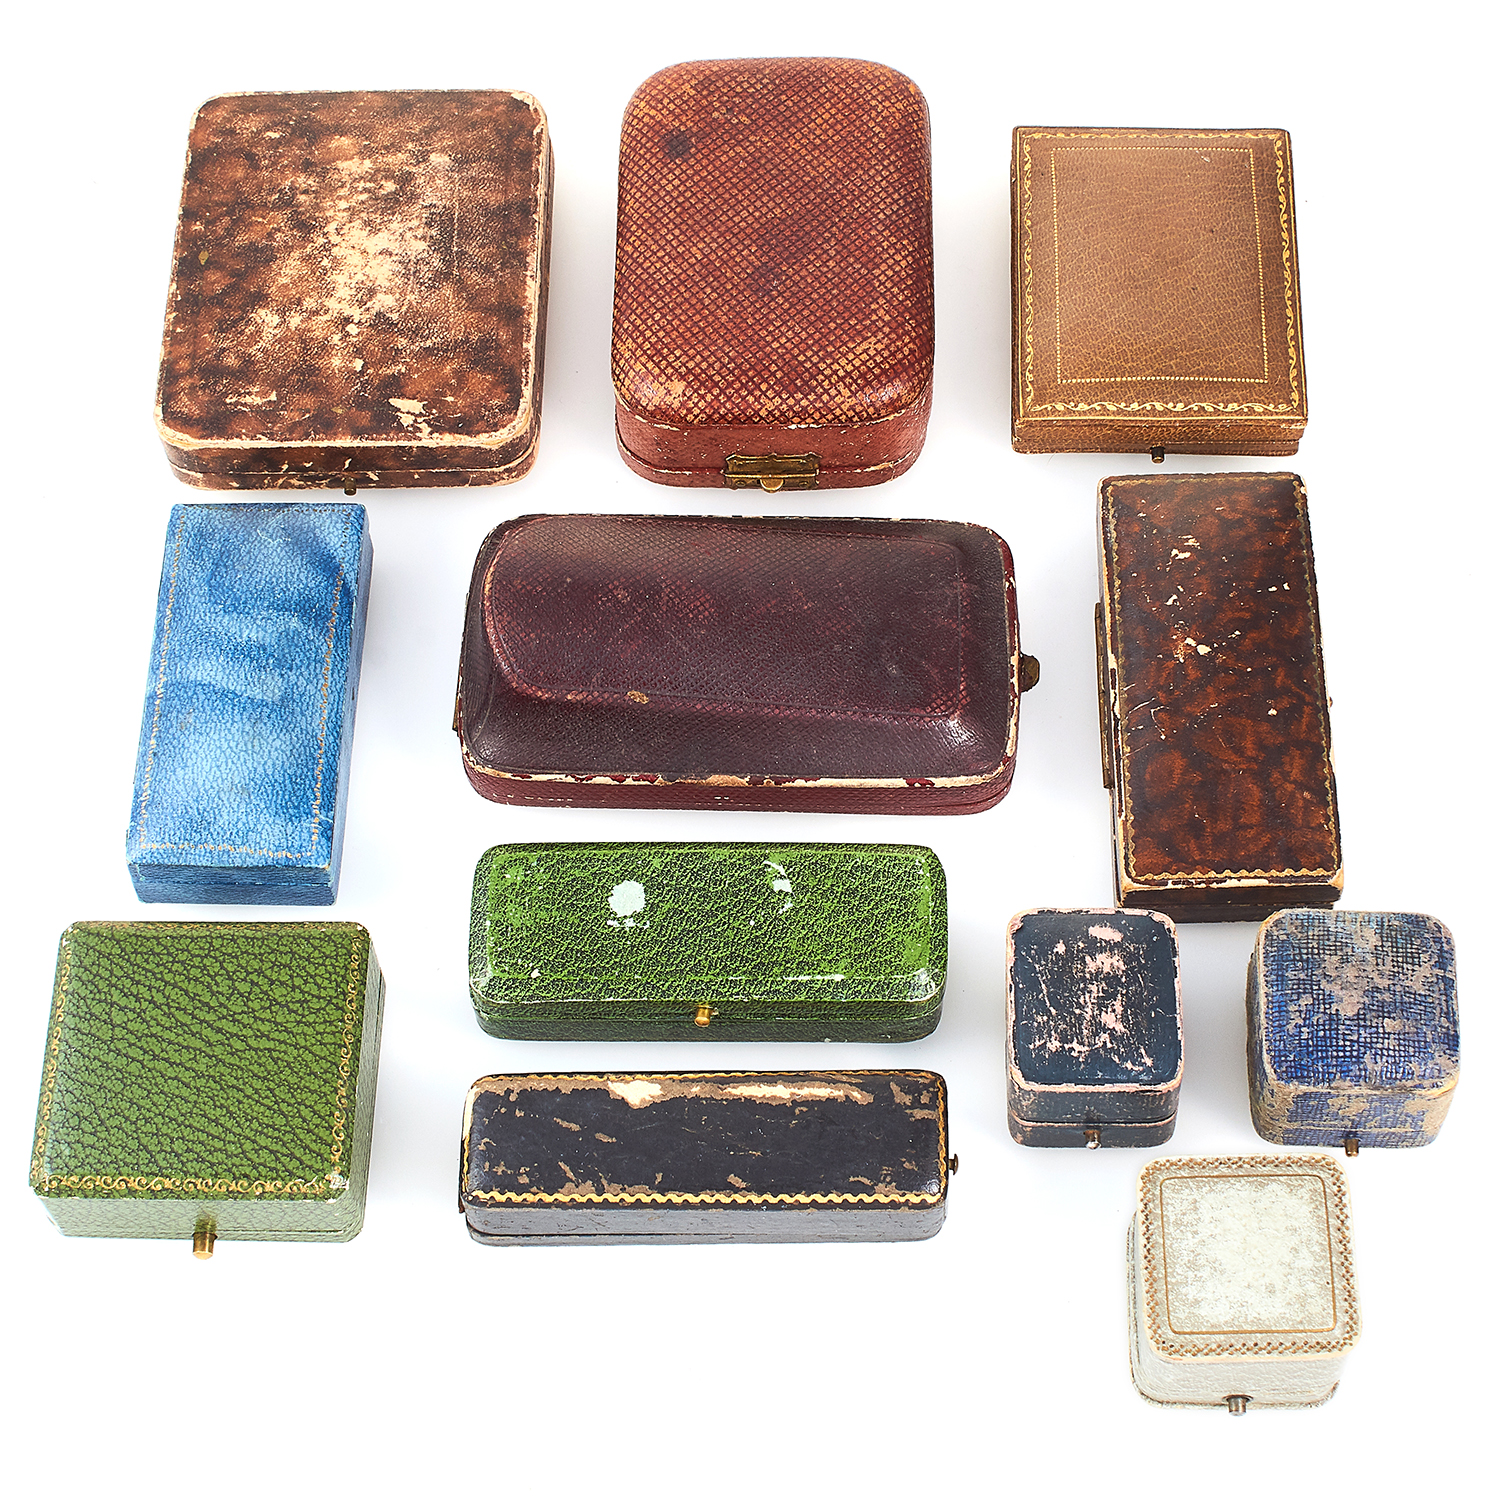 Los 193 - A COLLECTION OF TWELVE VARIOUS ANTIQUE JEWELLERY BOXES